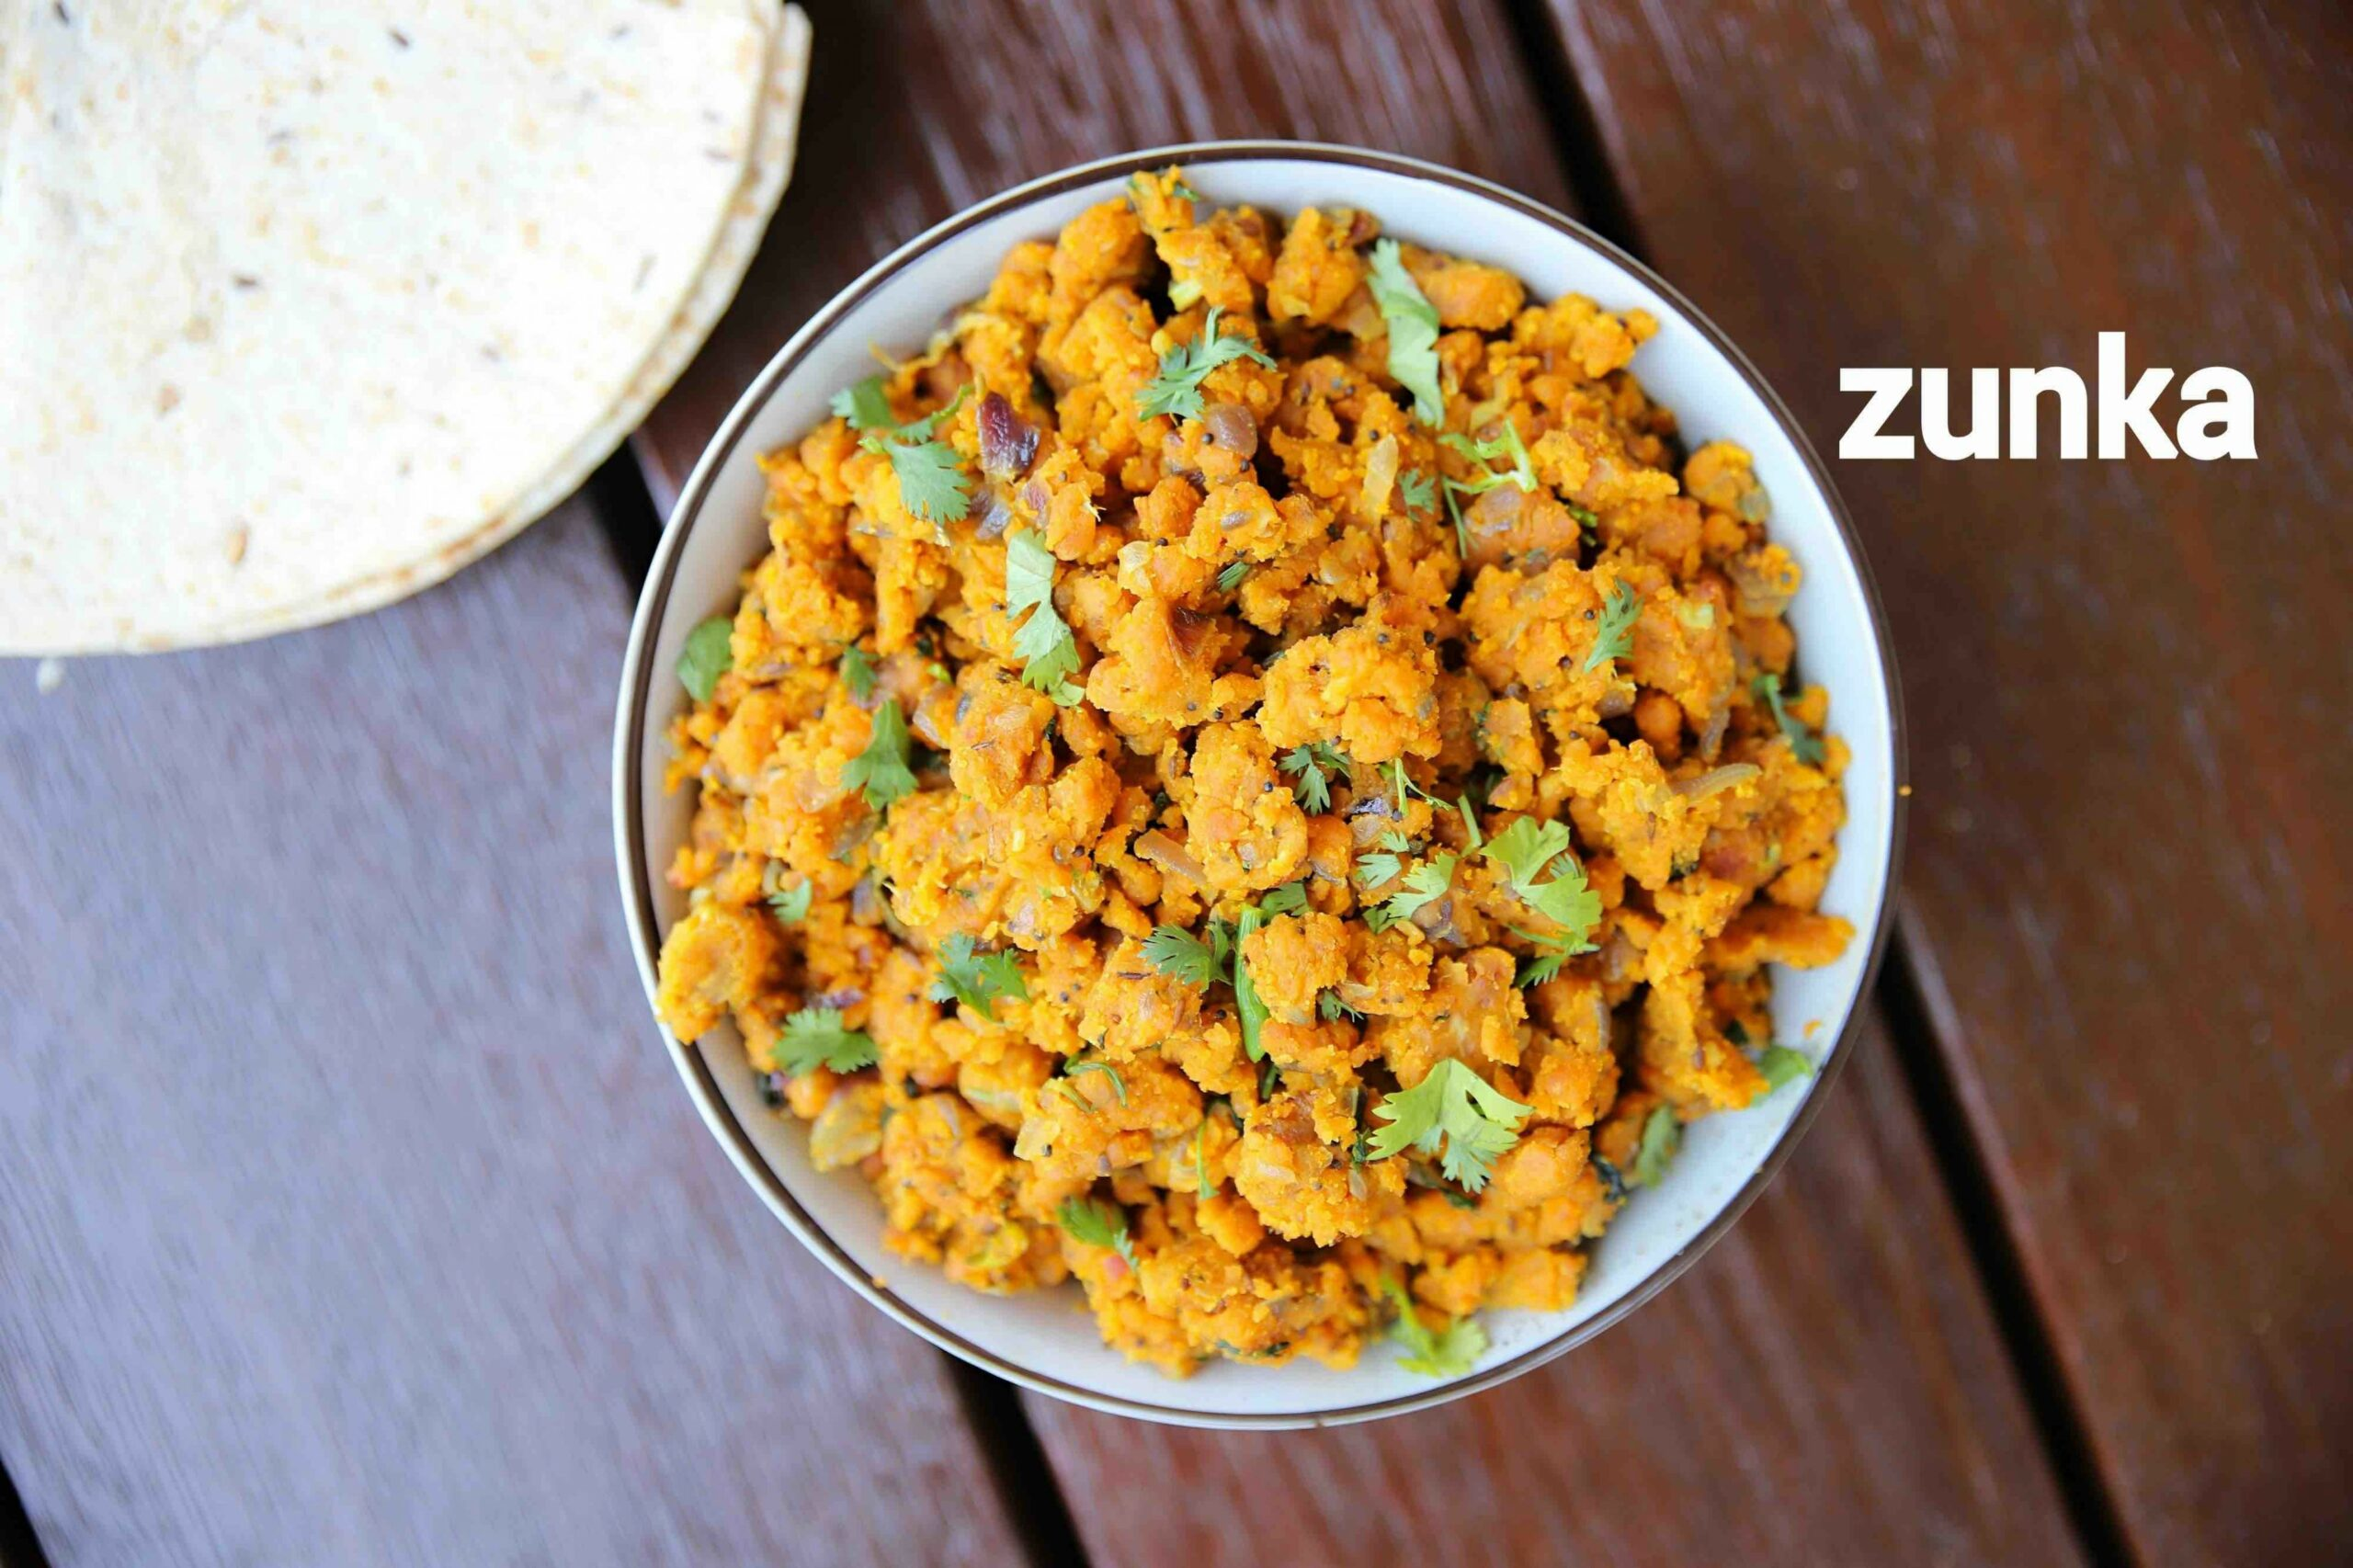 zunka recipe | jhunka recipe | marathi zunka recipe | dry pitla - Cooking Recipes Marathi